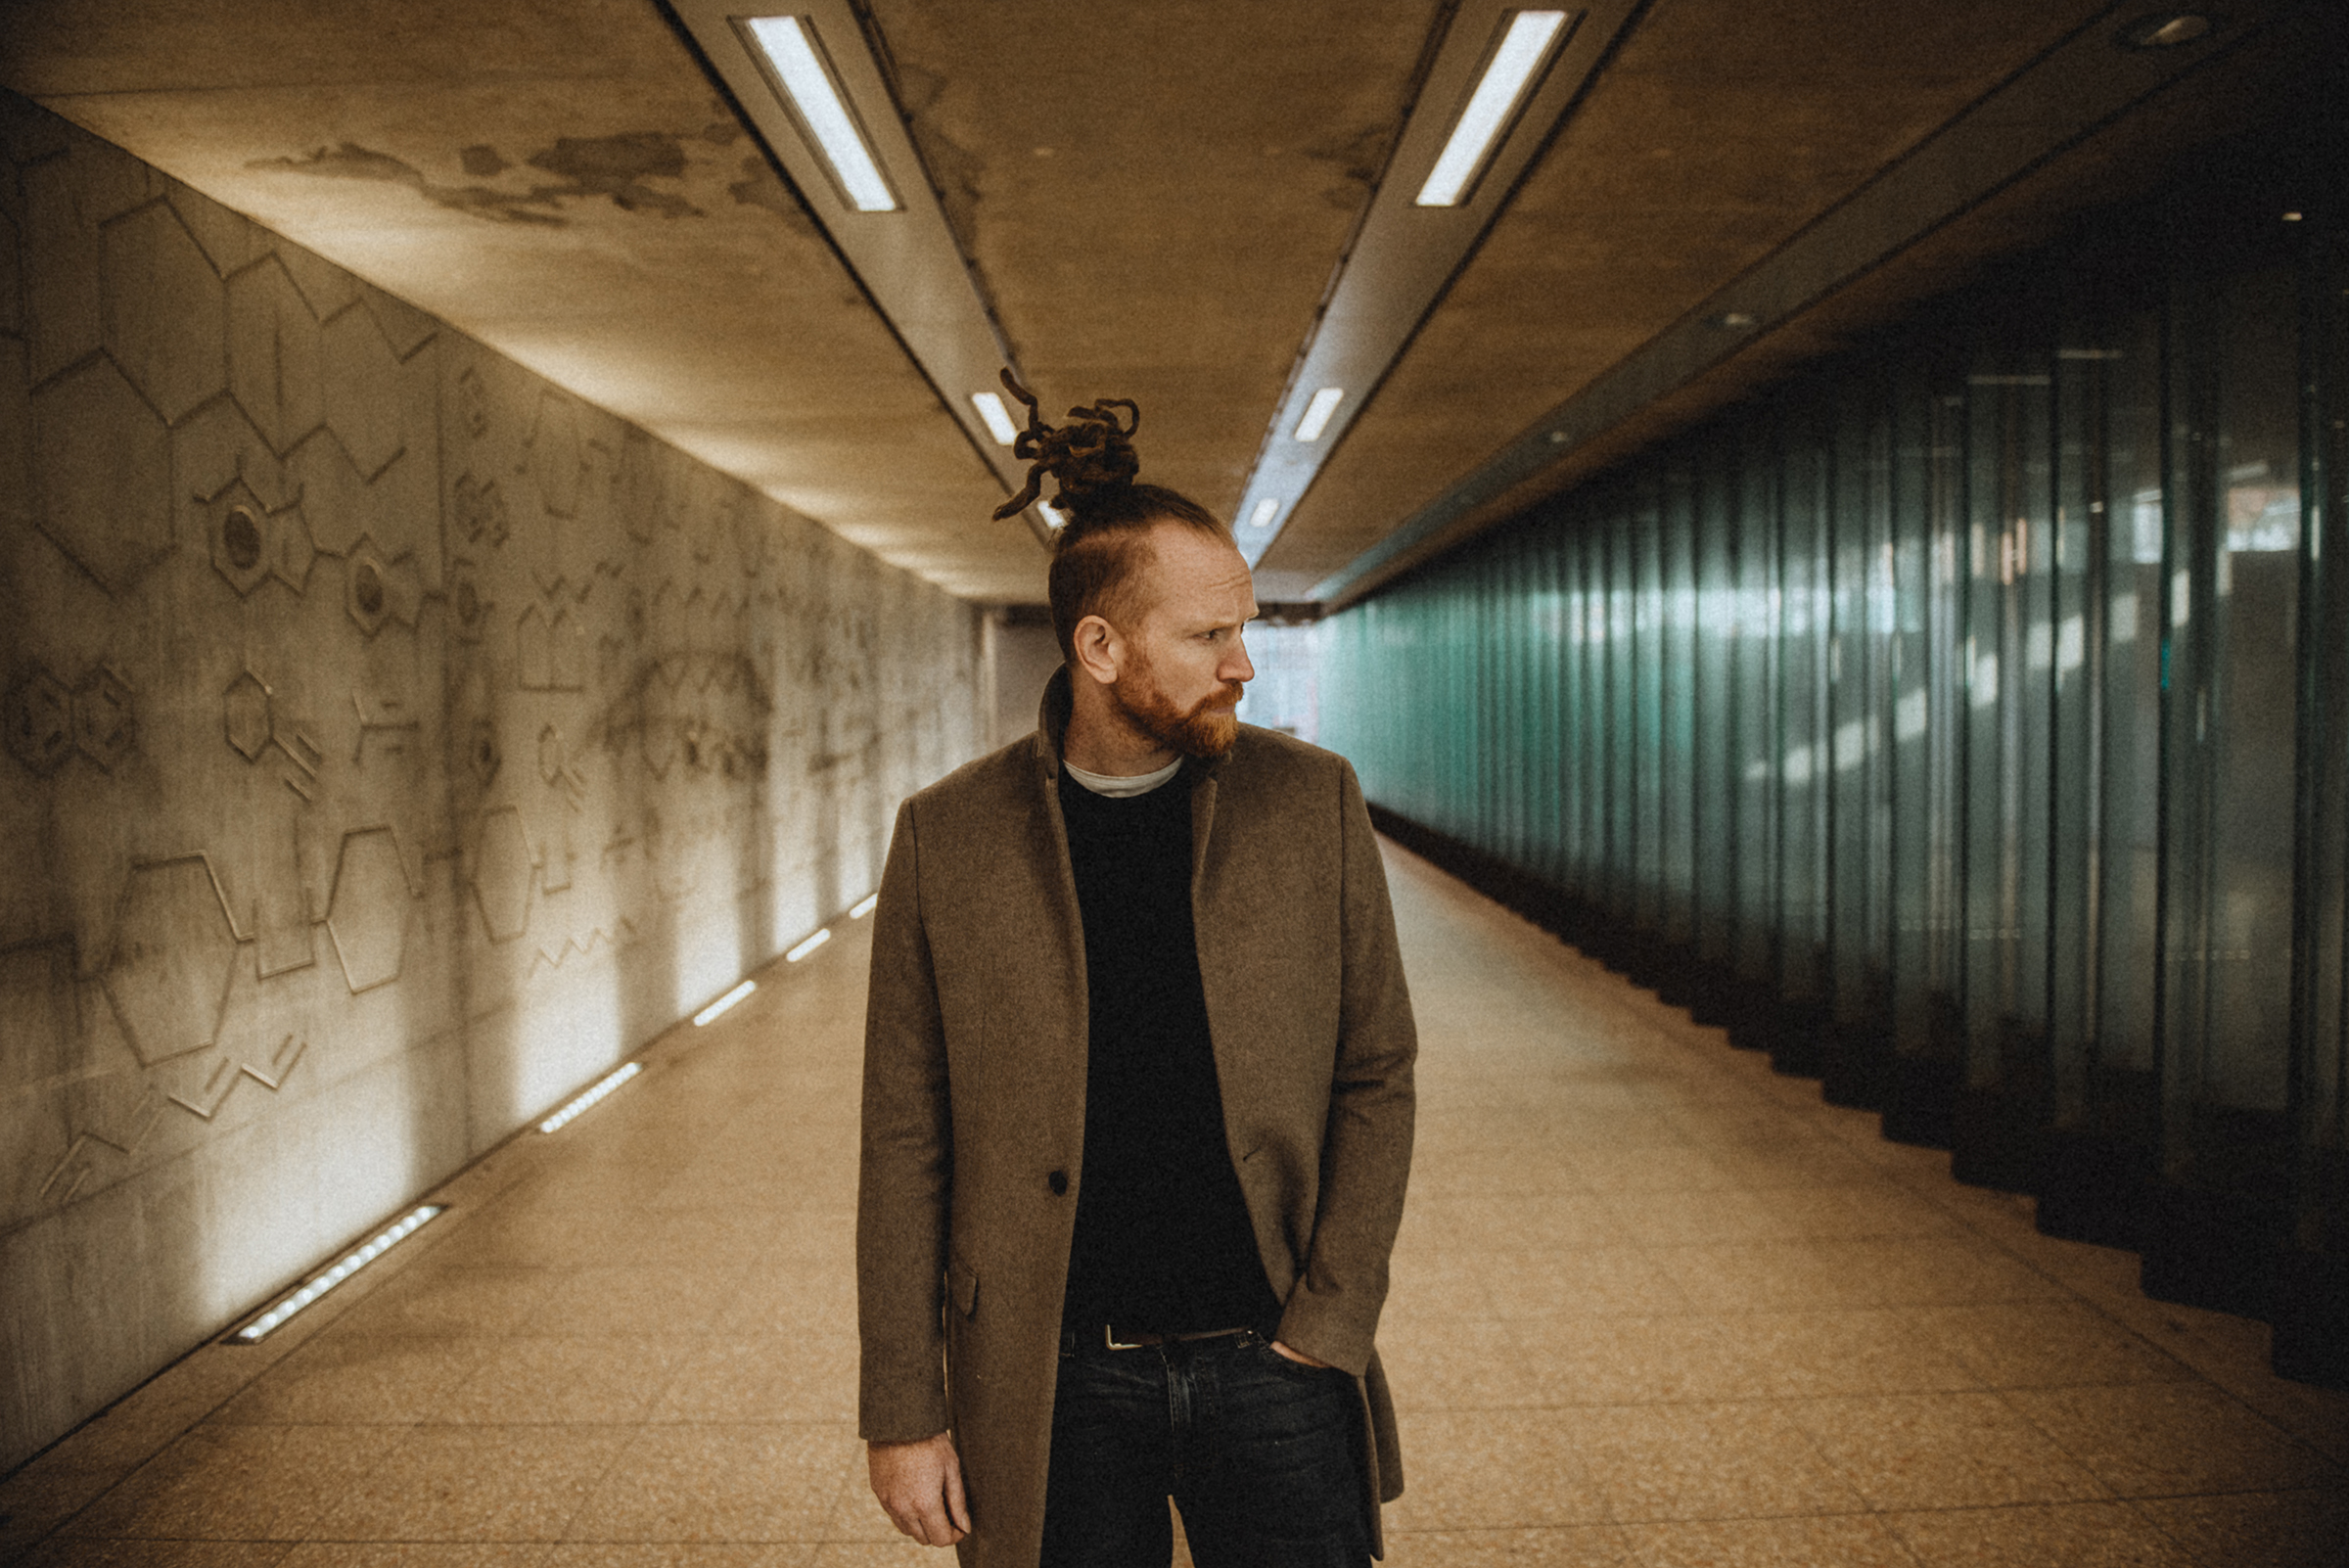 NEWTON FAULKNER announces new album INTERFERENCE (OF LIGHT) will be released on 20 August 1